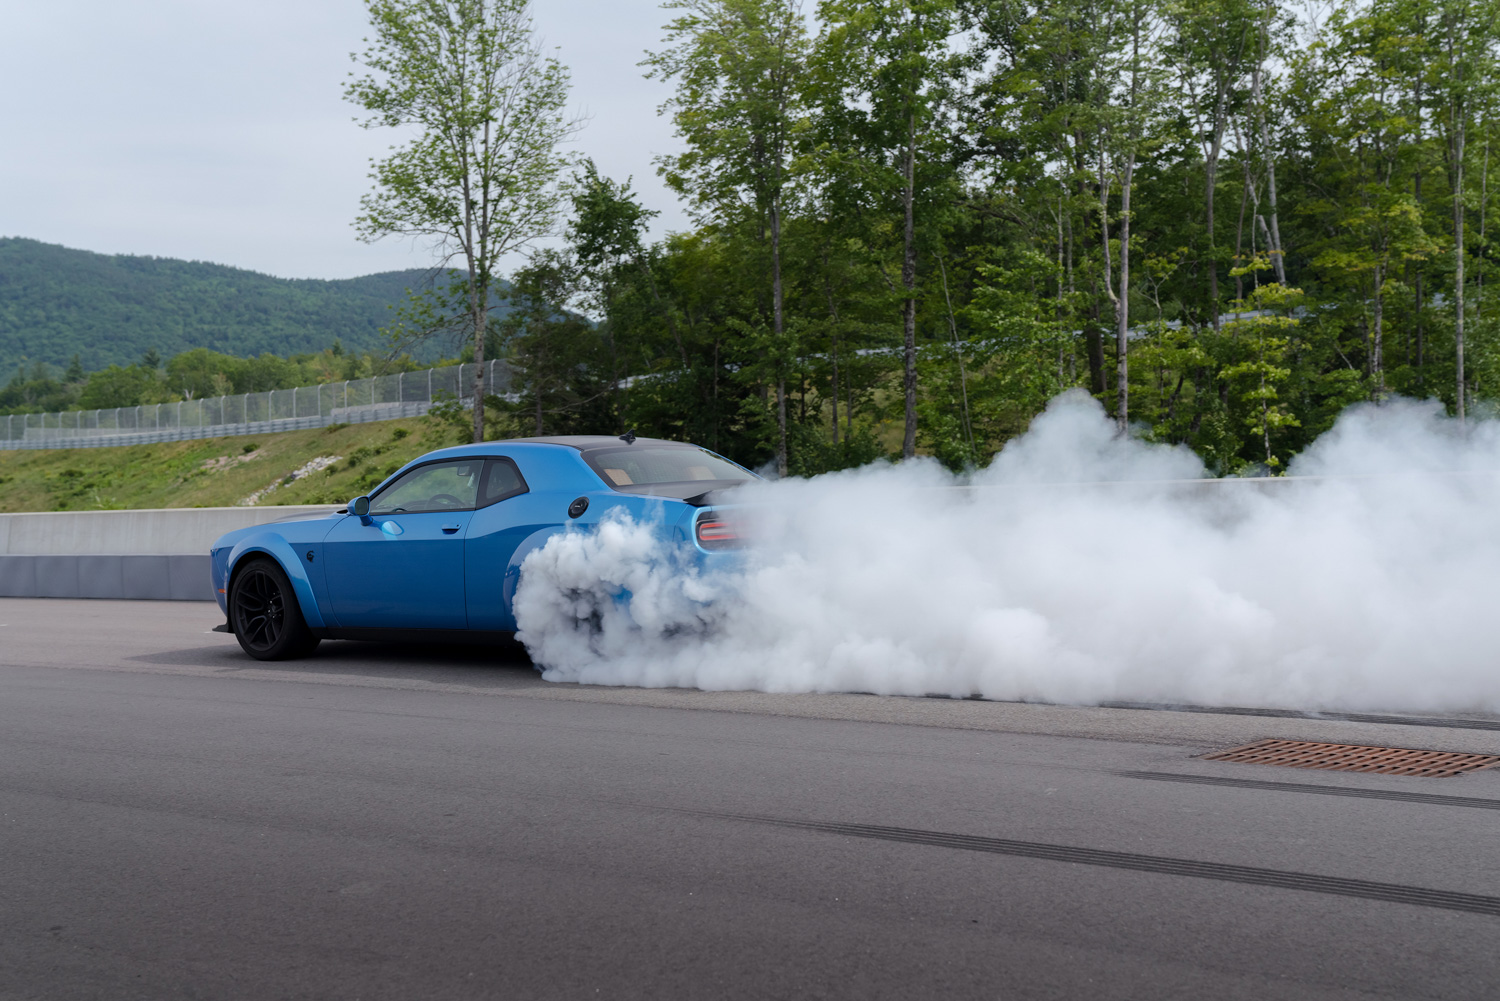 2019 Challenger SRT Hellcat Redeye Widebody burnout